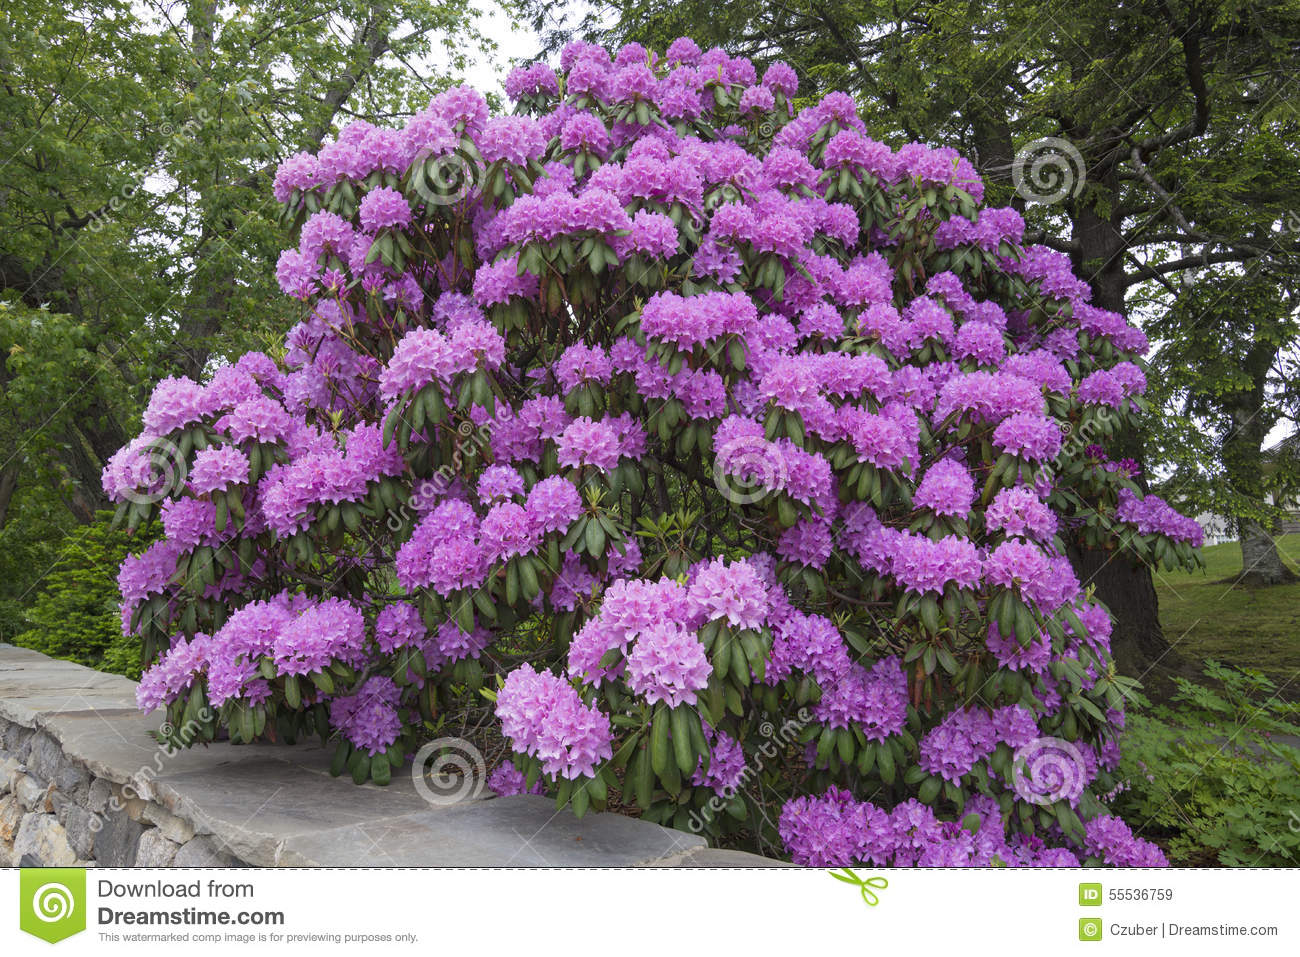 Huge rhododendron flowers in full bloom stock image image of download comp mightylinksfo